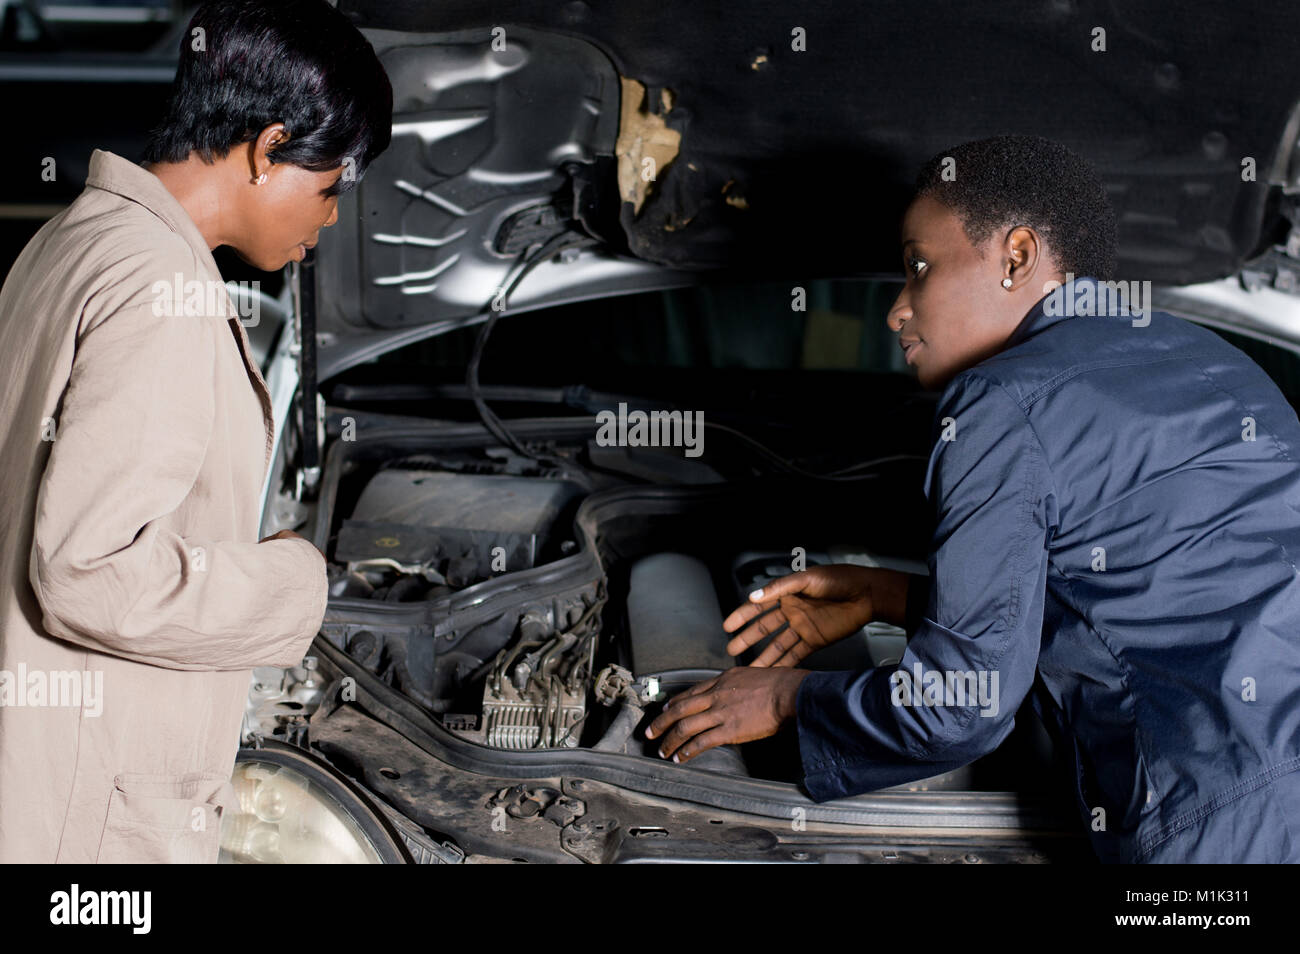 The mechanic explains the breakdown of the car to its owner at the workshop. - Stock Image